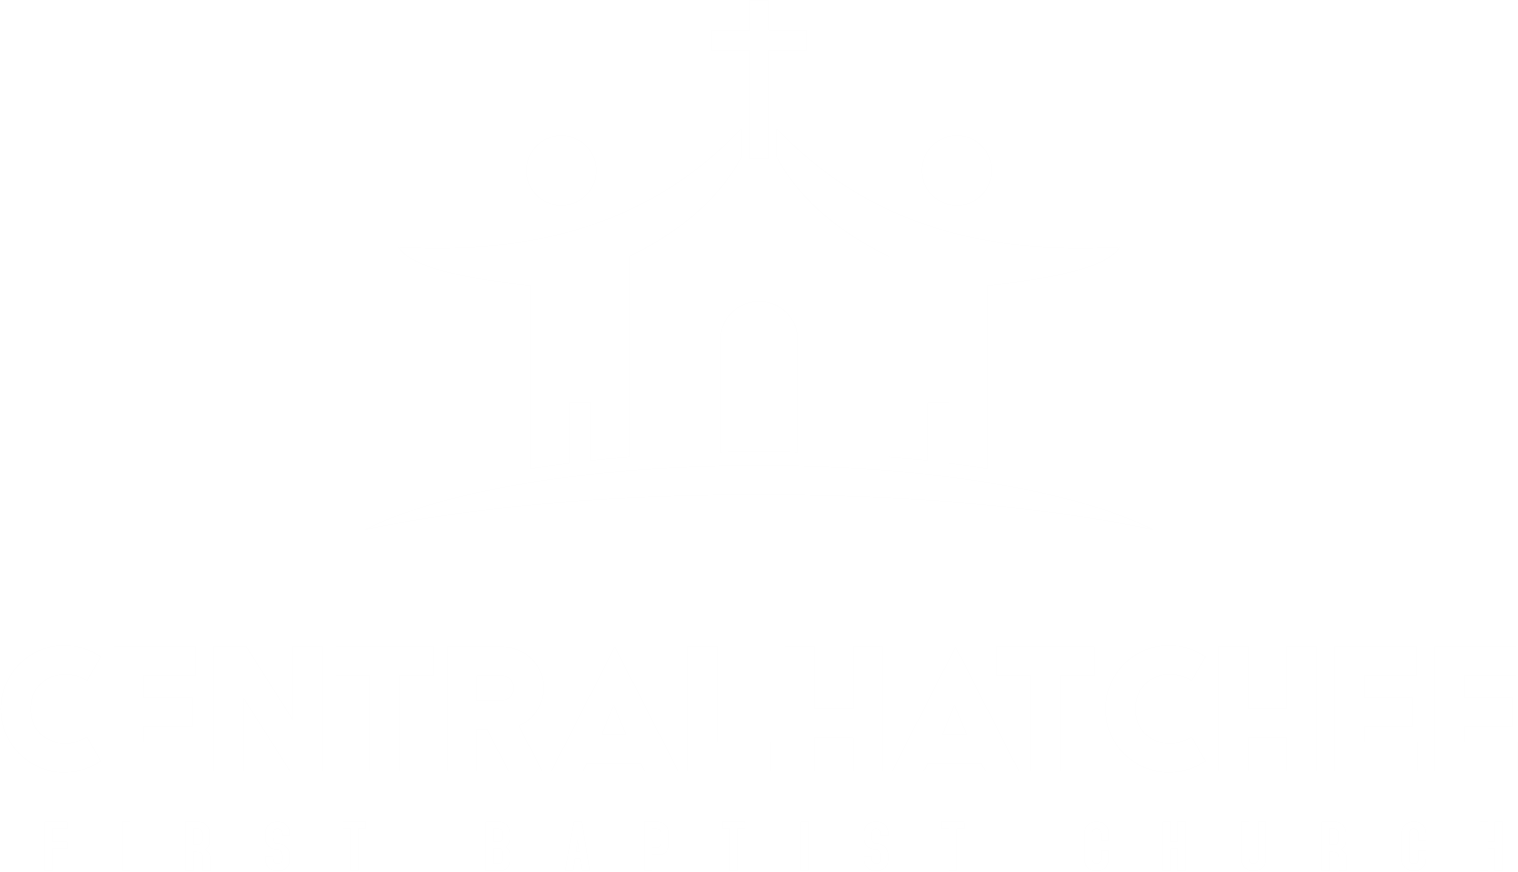 Centralhatchee First Baptist Church